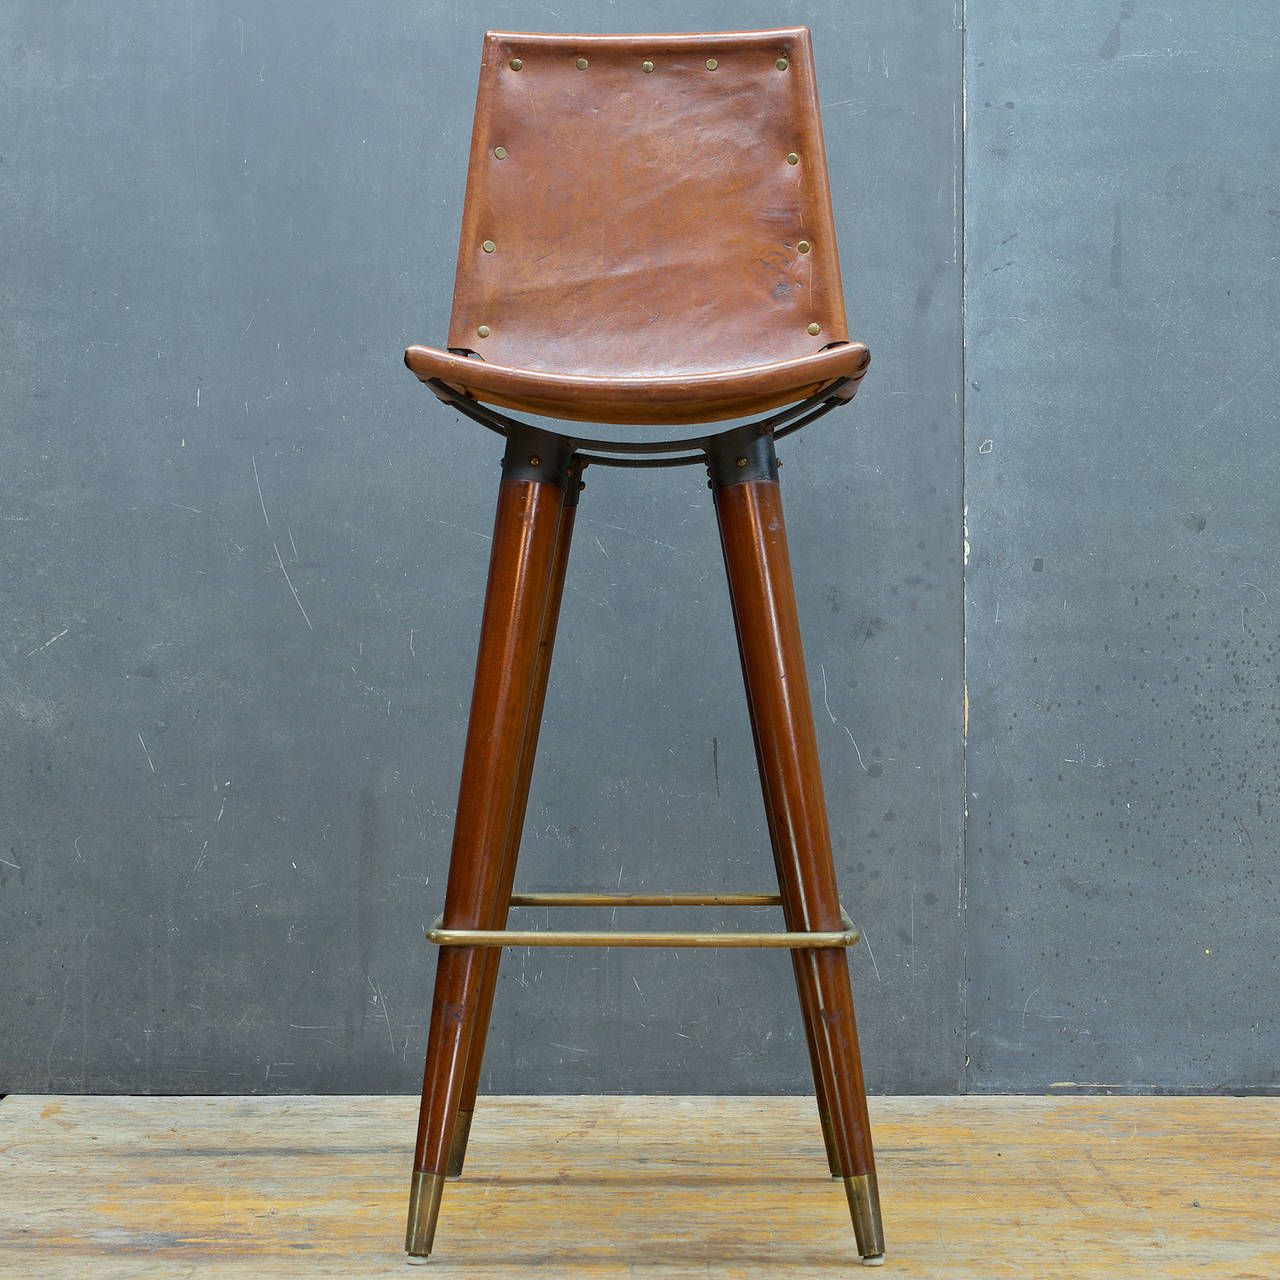 Home Furniture Conscientious Solid Wood Bar Chair Backrest High Stools Home Dining Stool Bar Chair Modern Minimalist High Stool